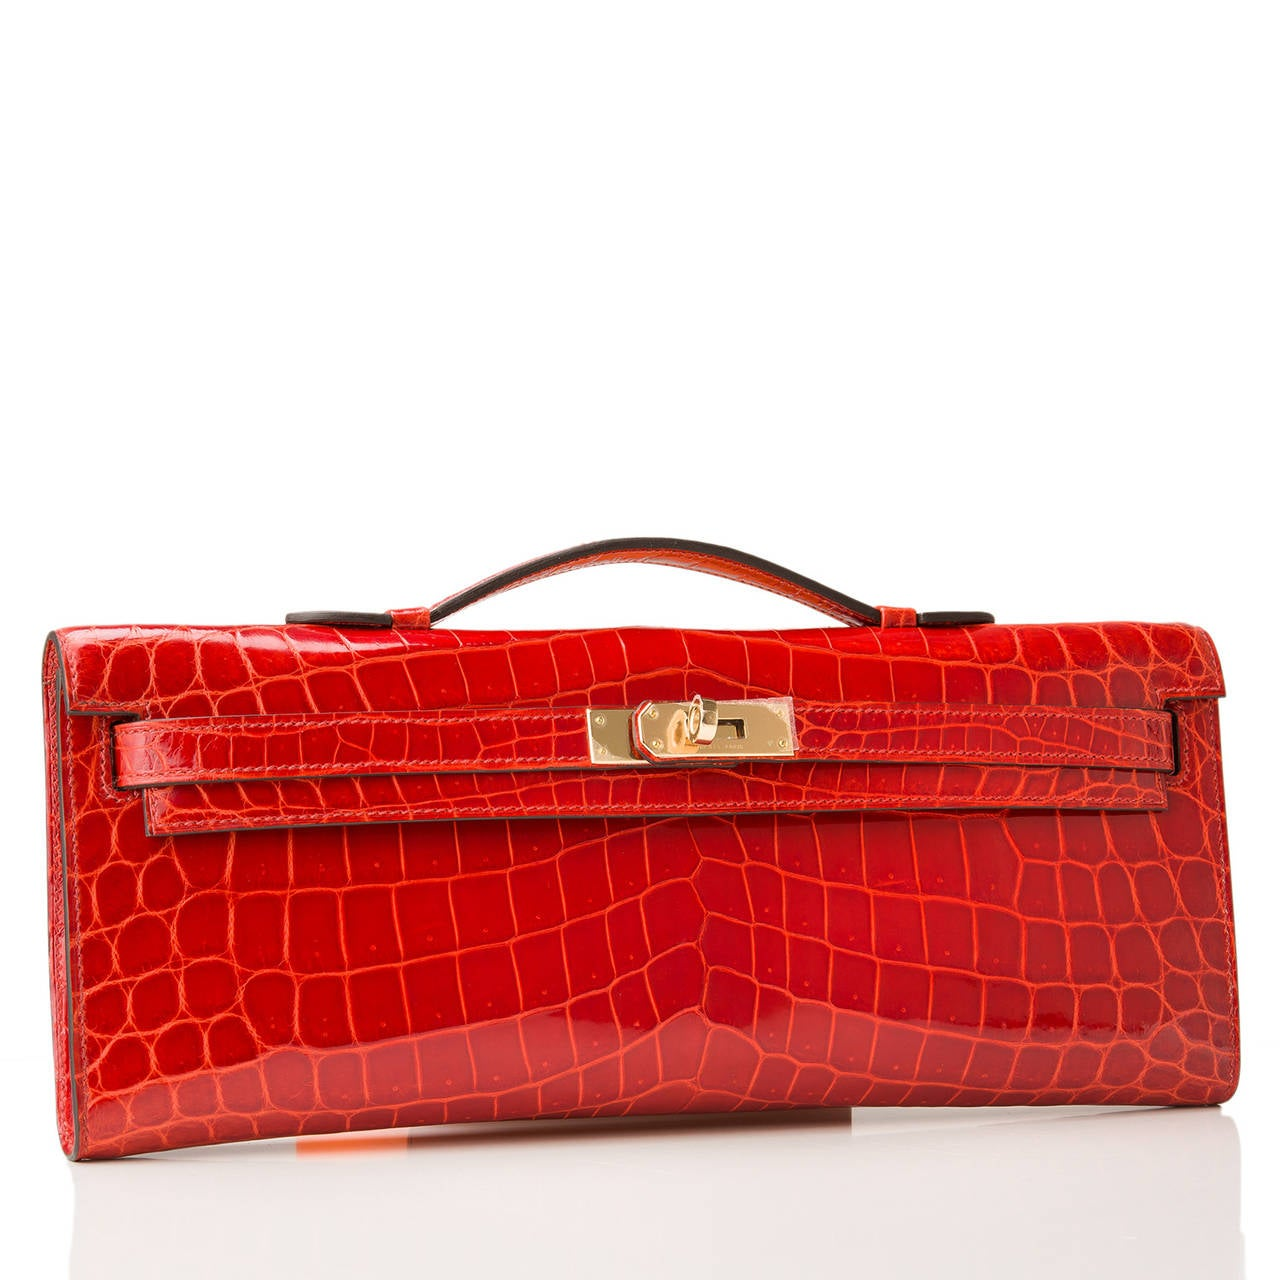 Hermes Sanguine shiny porosus crocodile Kelly Cut with permabrass hardware.  This Kelly Cut in a Hermes' favorite color -- Sanguine -- is a gorgeous red that is elegant with rare Porosus crocodile skin and gold hardware; the bag has tonal